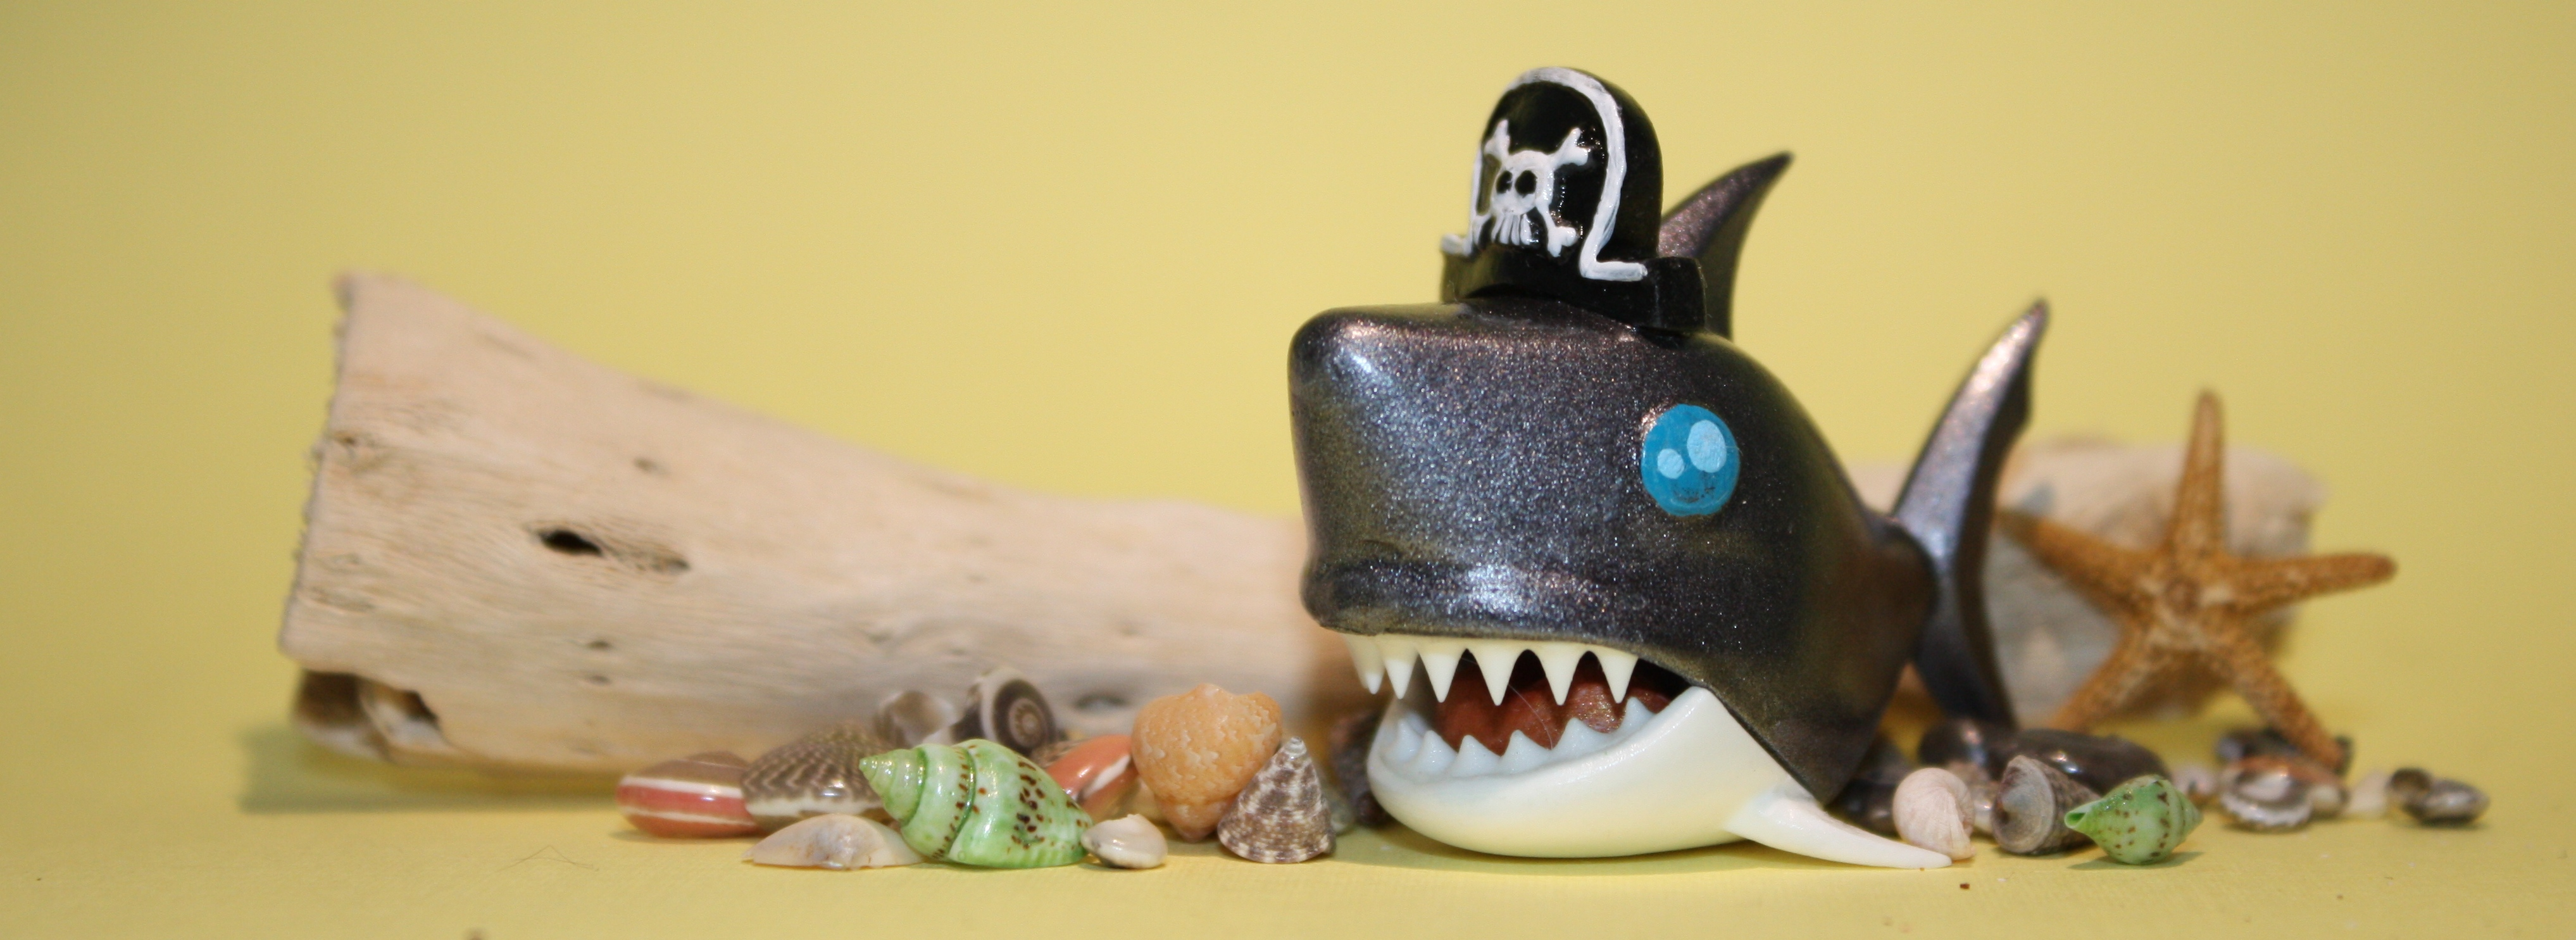 RawrzToys shark with Form 1 printed pirate hat